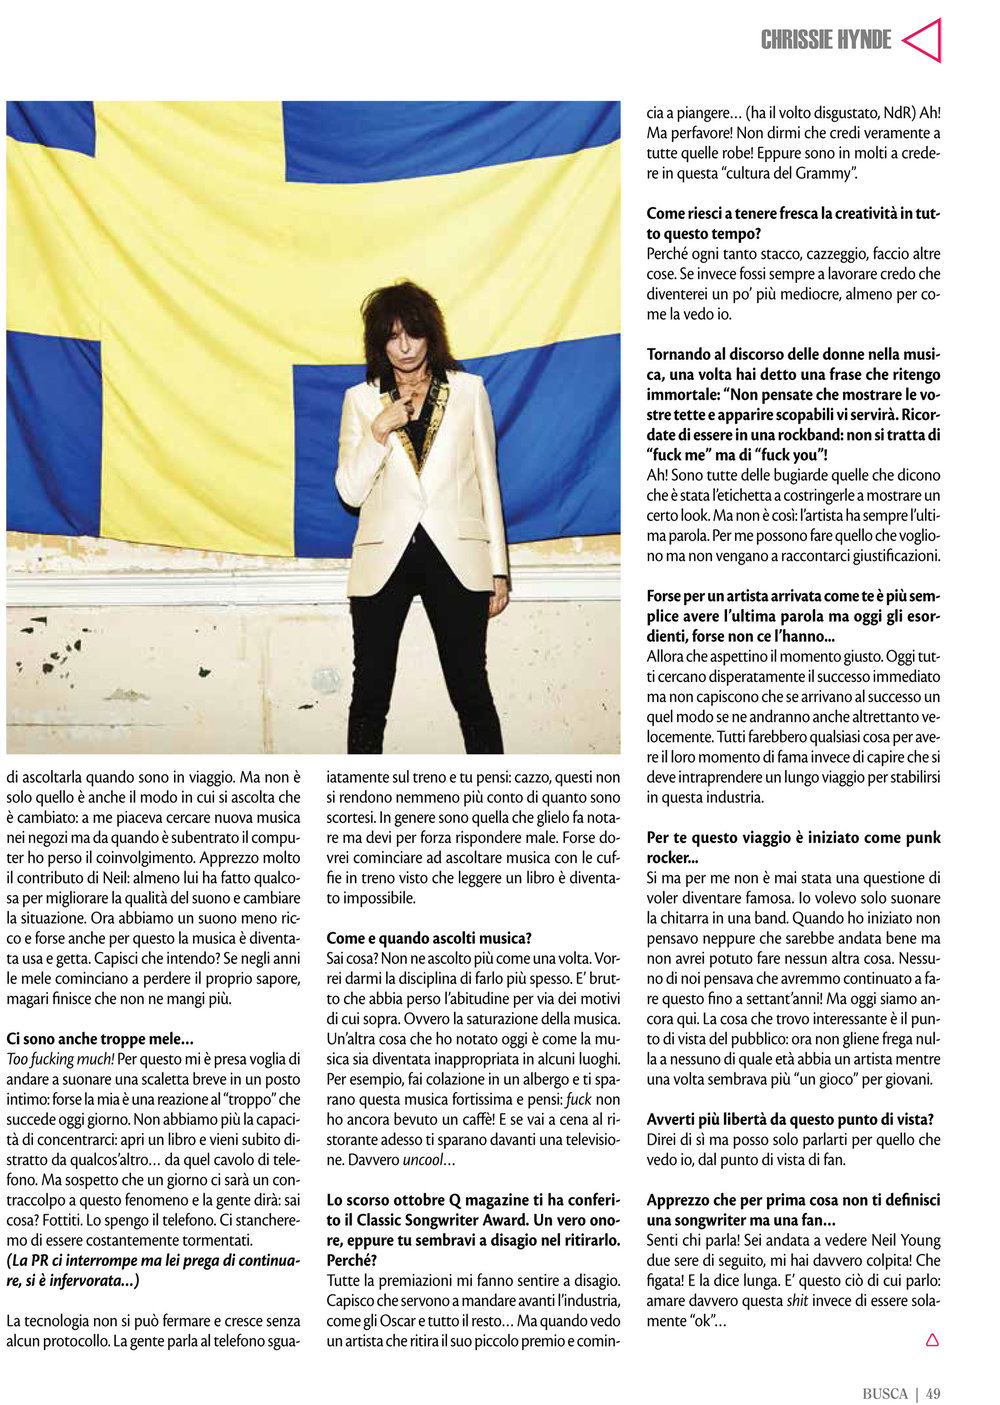 Buscadero: Chrissie Hynde interview